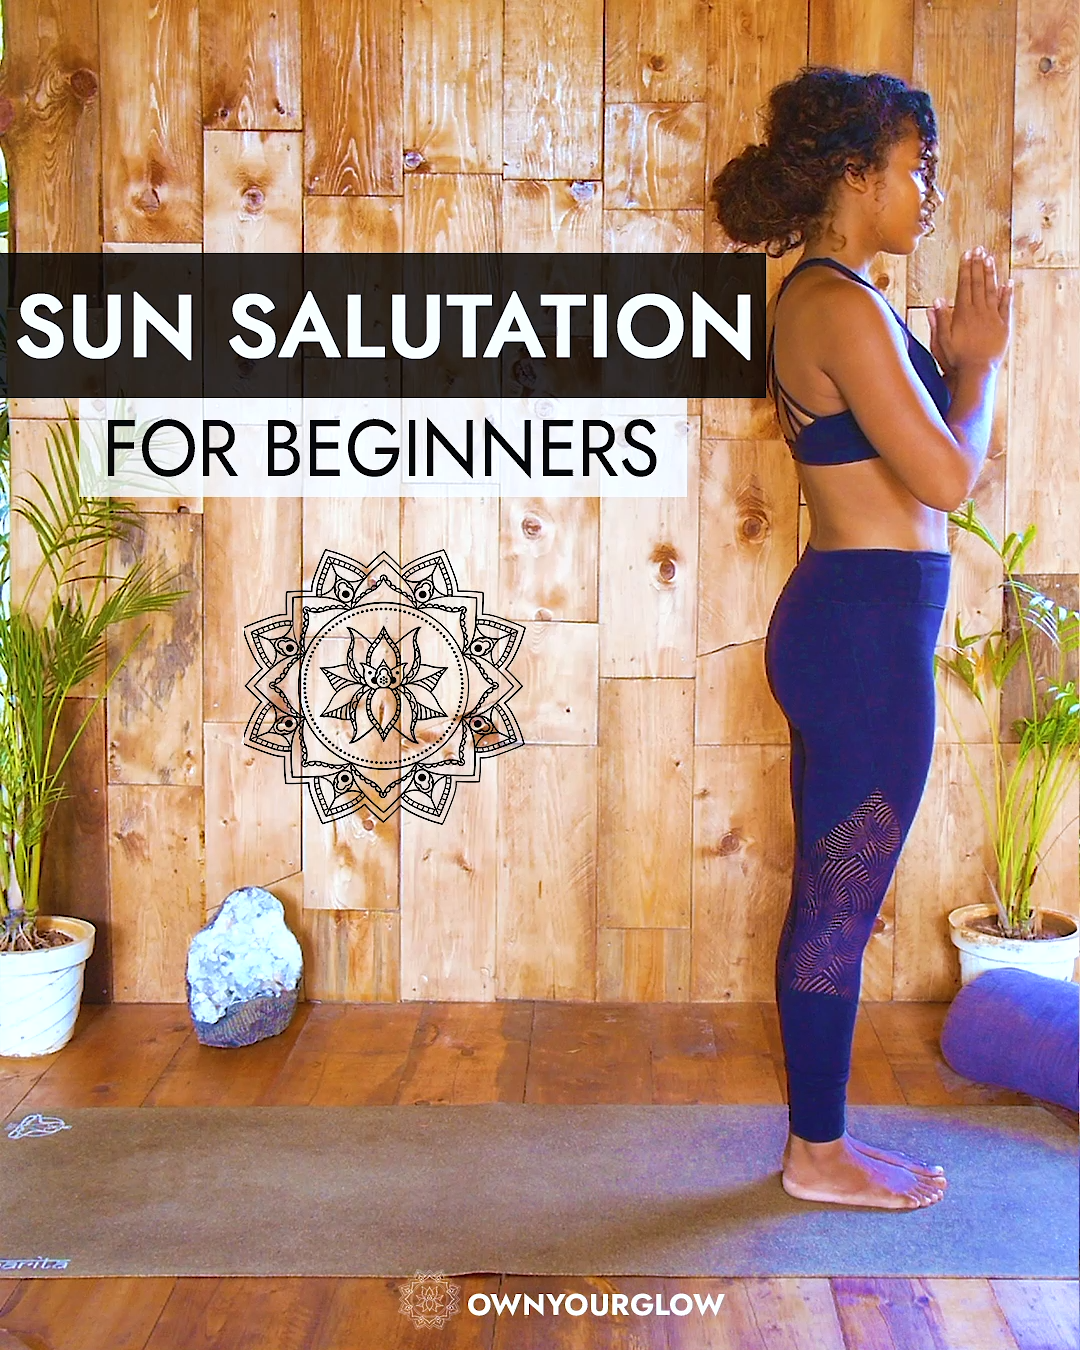 Surya Namaskara also known as Sun Salutations is a great way to start your day with!☀ Sun salutation consist of 12 flowing steps and has the perfect combination of postures that stimulates and tones your whole body. It will not only increase your strength, but also your overall flexibility. 🤸🏾‍♀️ ⠀ #yoga#beginneryoga#yogatutorial#sunsalutation#surayanamaskara#Yogasequence#sequence